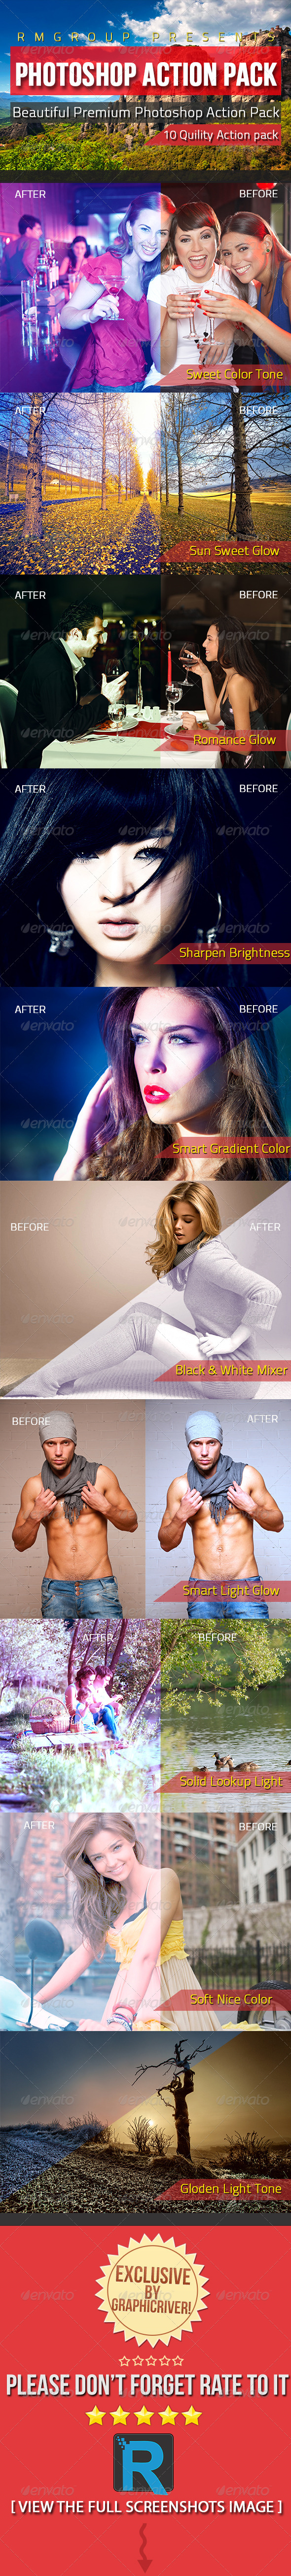 GraphicRiver Beautiful Premium Photoshop Action Pack 4659674